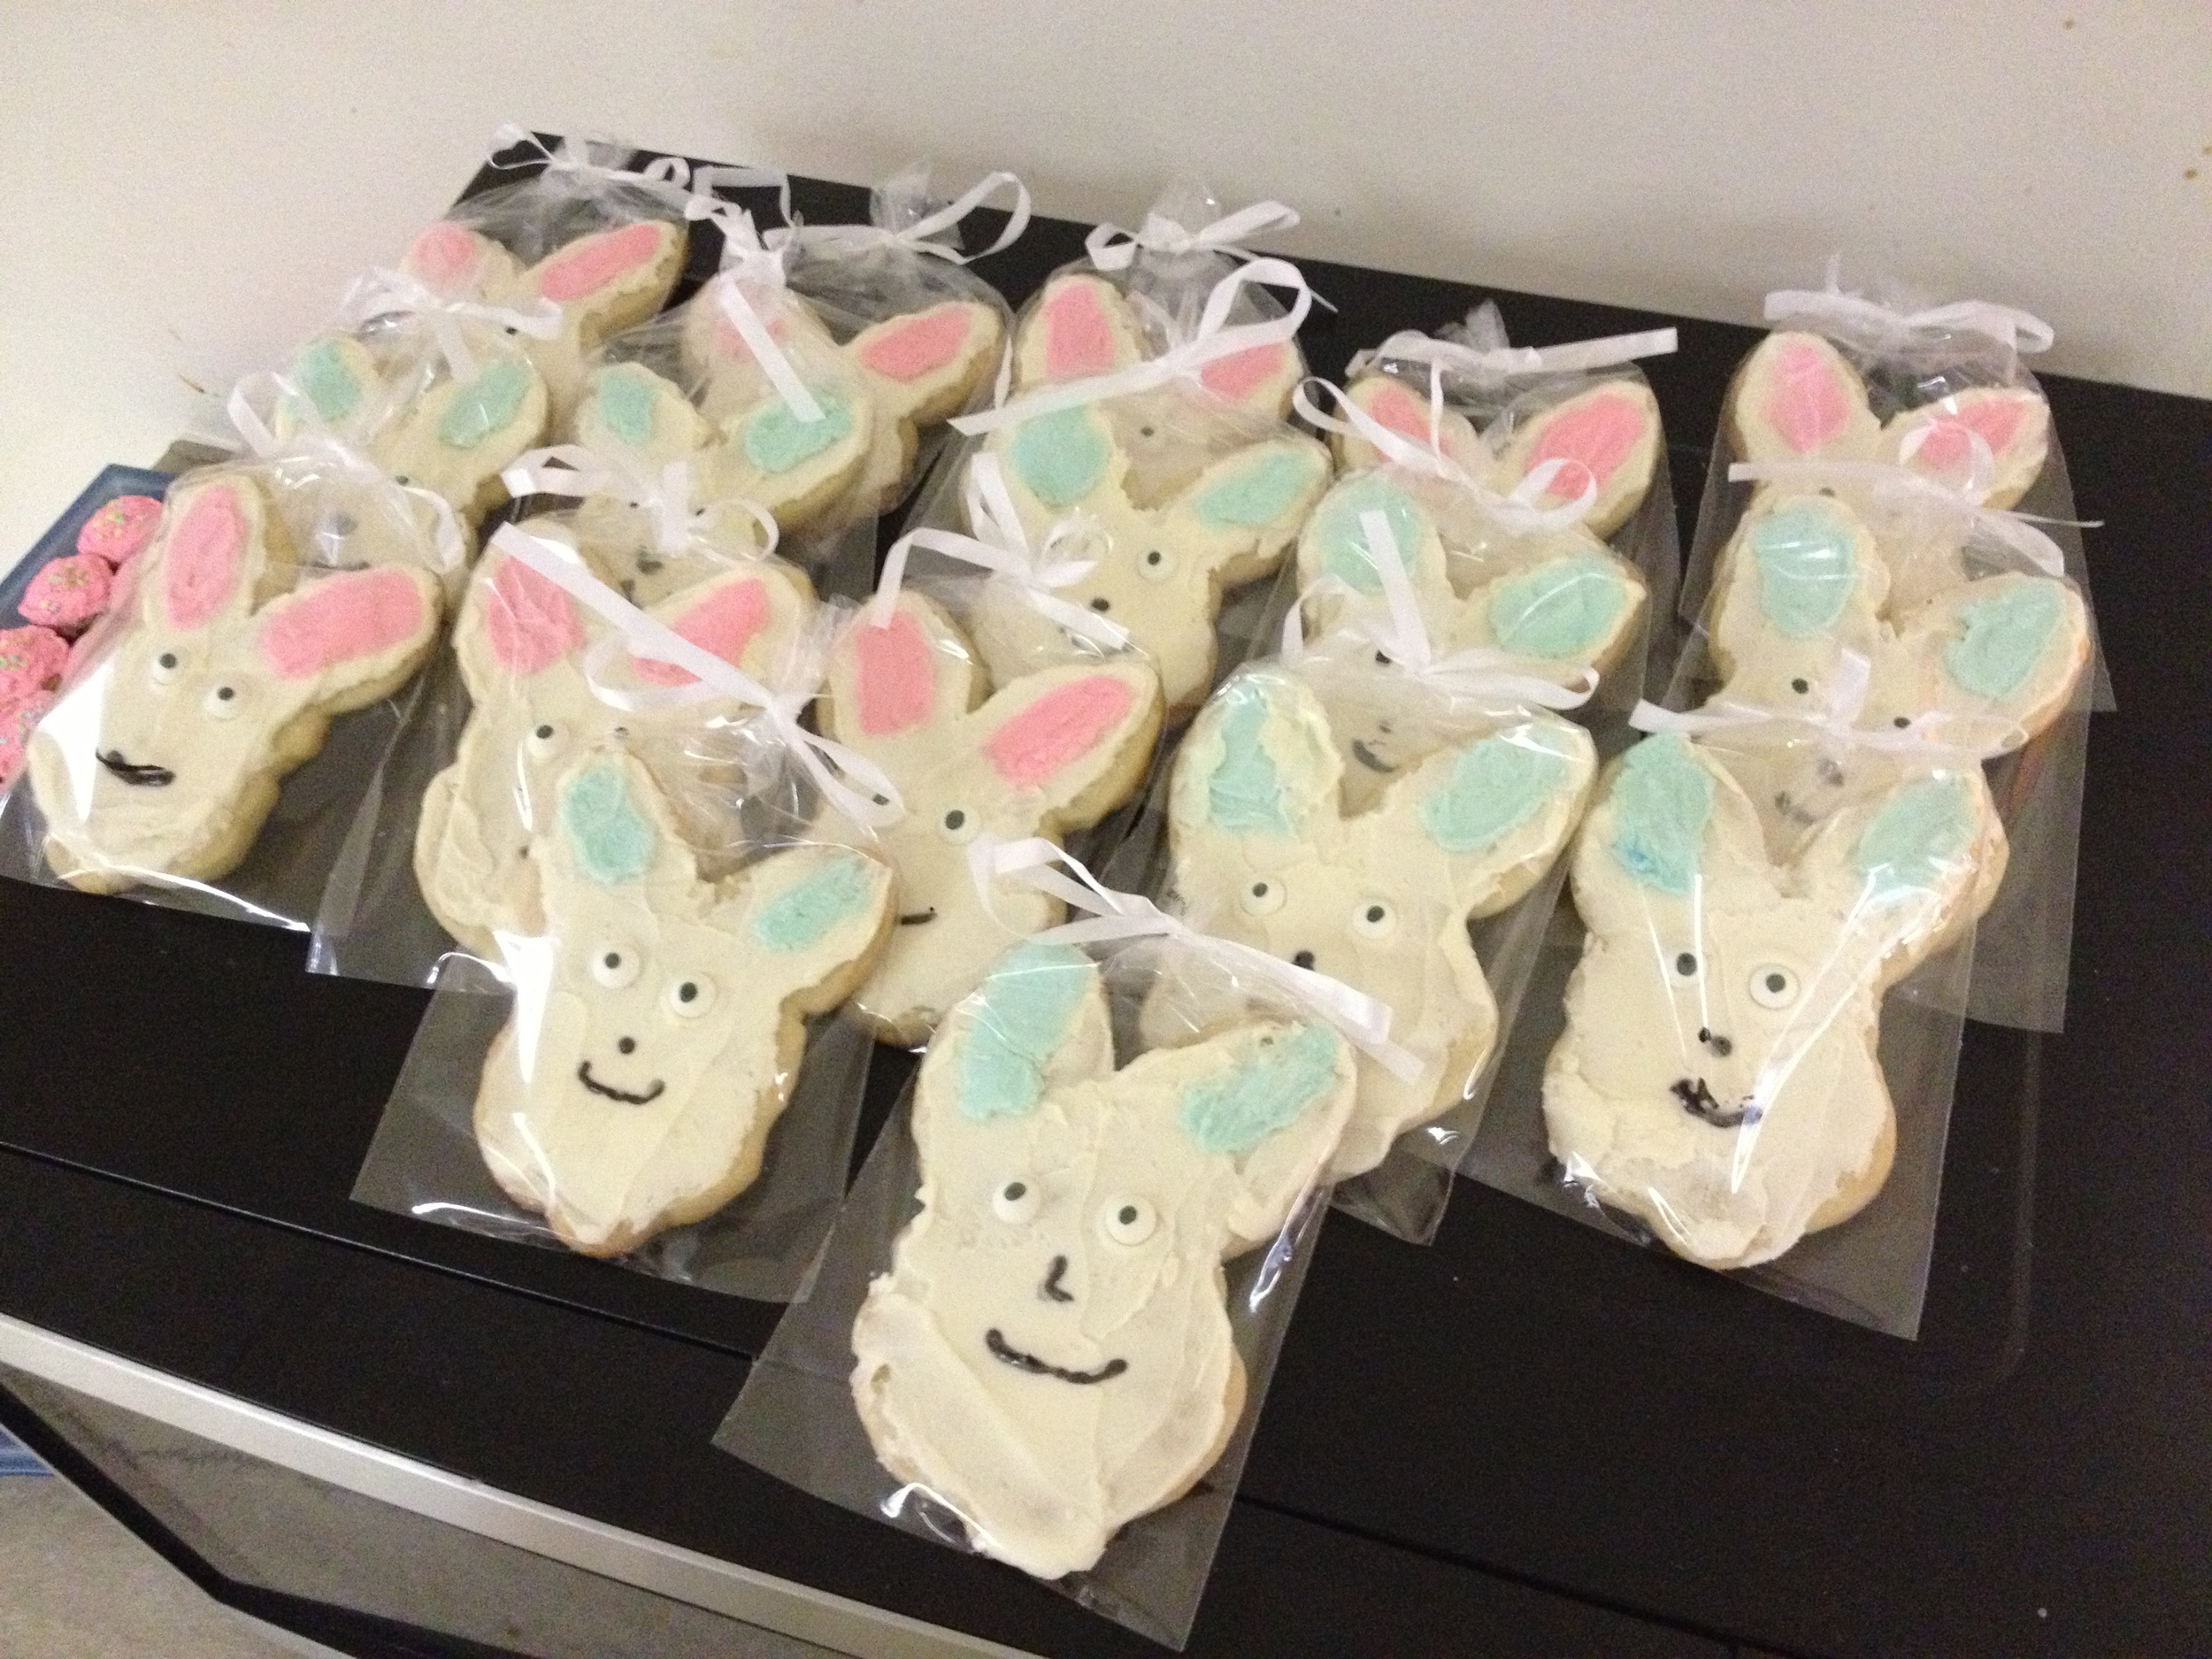 Bunnies for All